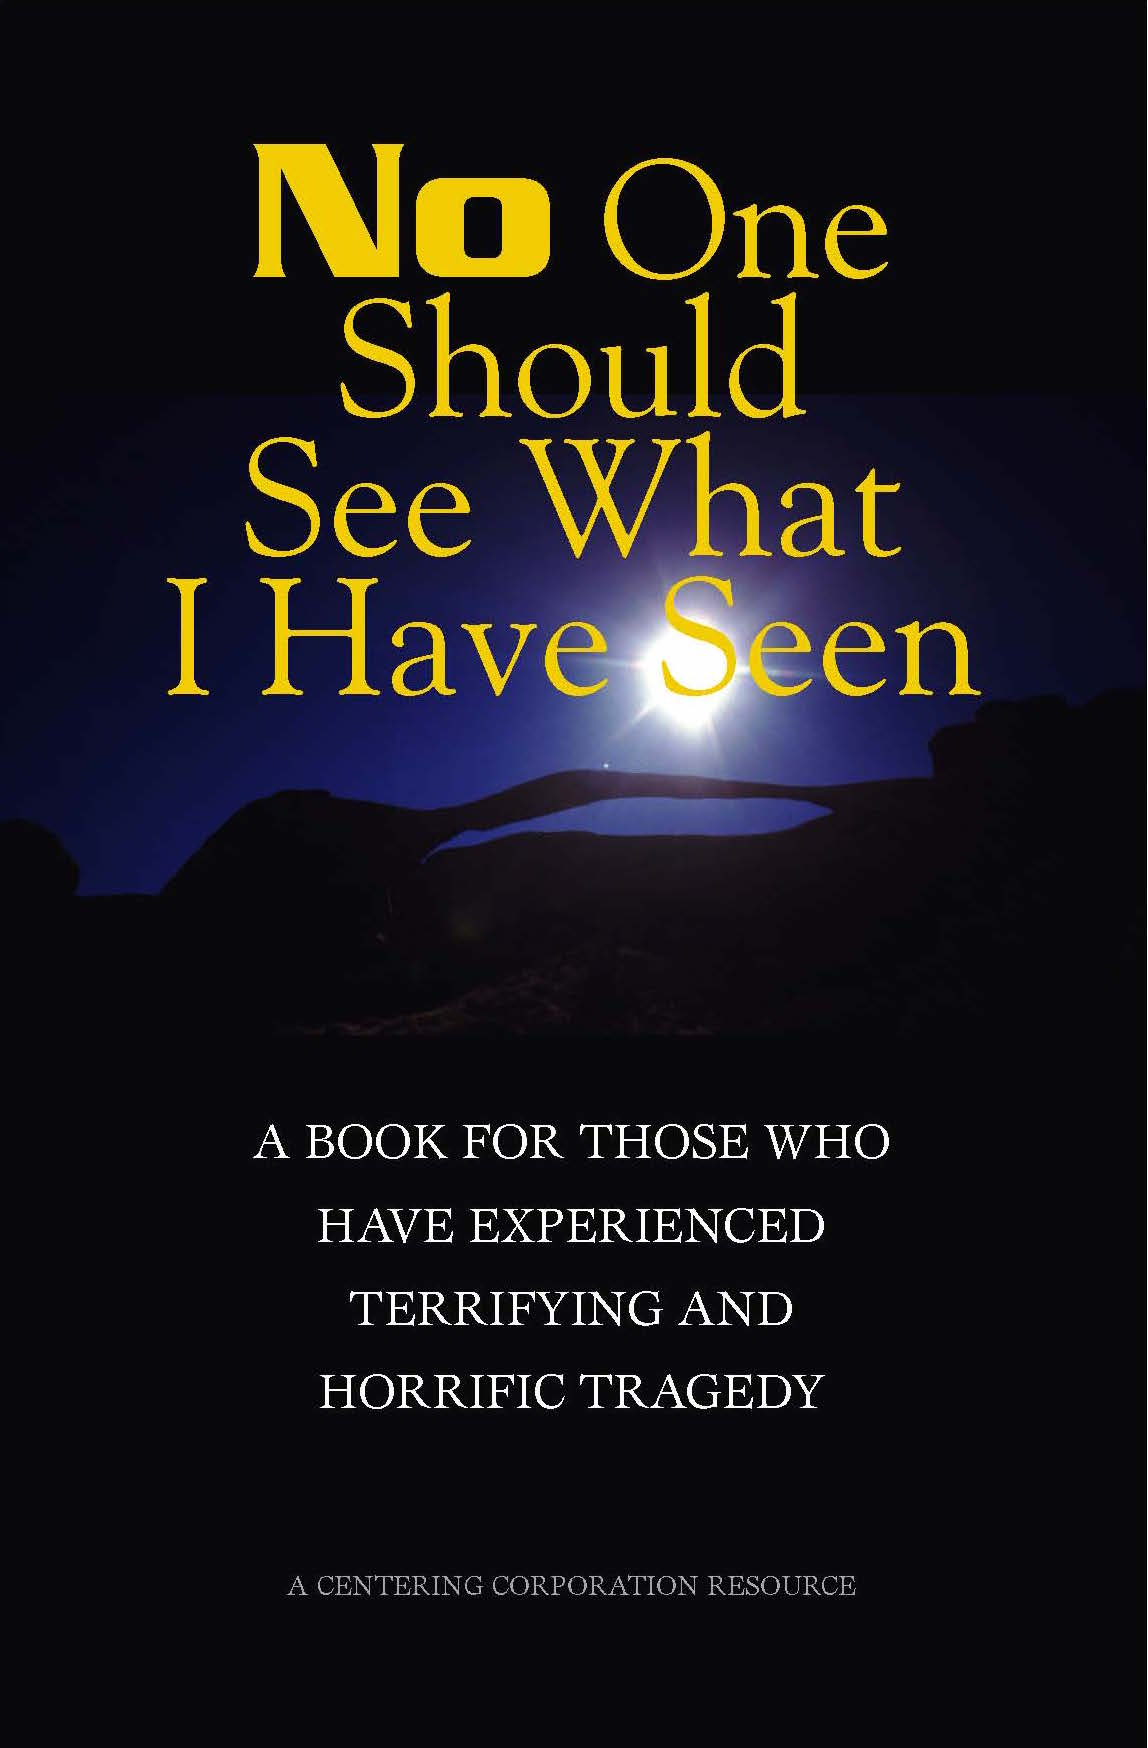 No One Should See What I Have Seen:  A Book for Those Who Have Experienced Terrifying and Horrific Tragedy